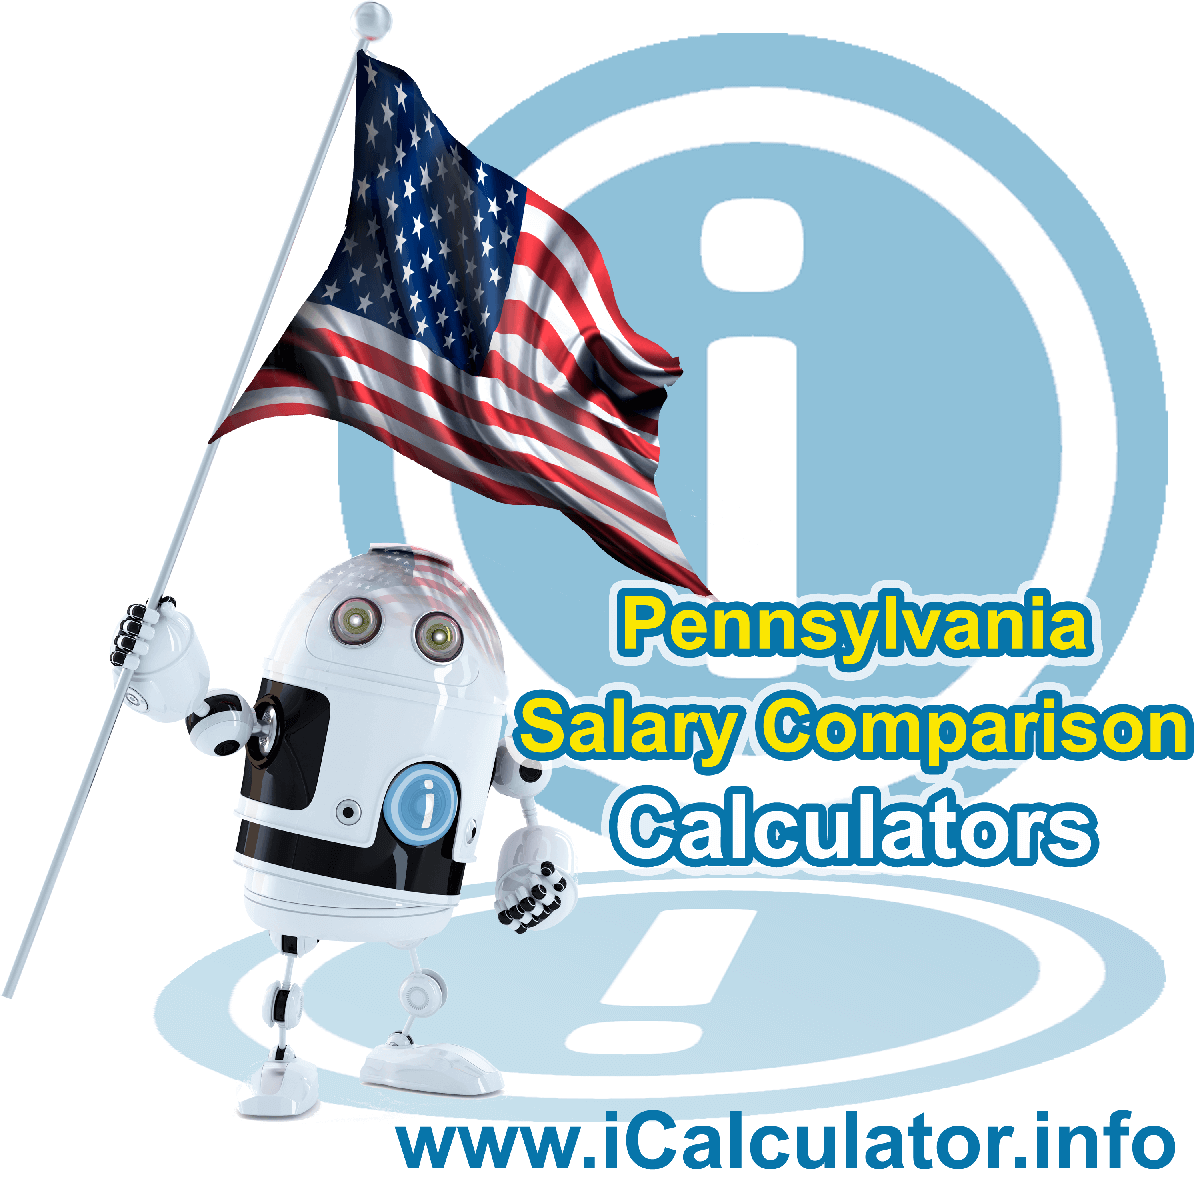 Pennsylvania Salary Comparison Calculator 2019   iCalculator   The Pennsylvania Salary Comparison Calculator allows you to quickly calculate and compare upto 6 salaries in Pennsylvania or between other states for the 2019 tax year and historical tax years. Its an excellent tool for jobseekers, pay raise comparison and comparison of salaries between different US States